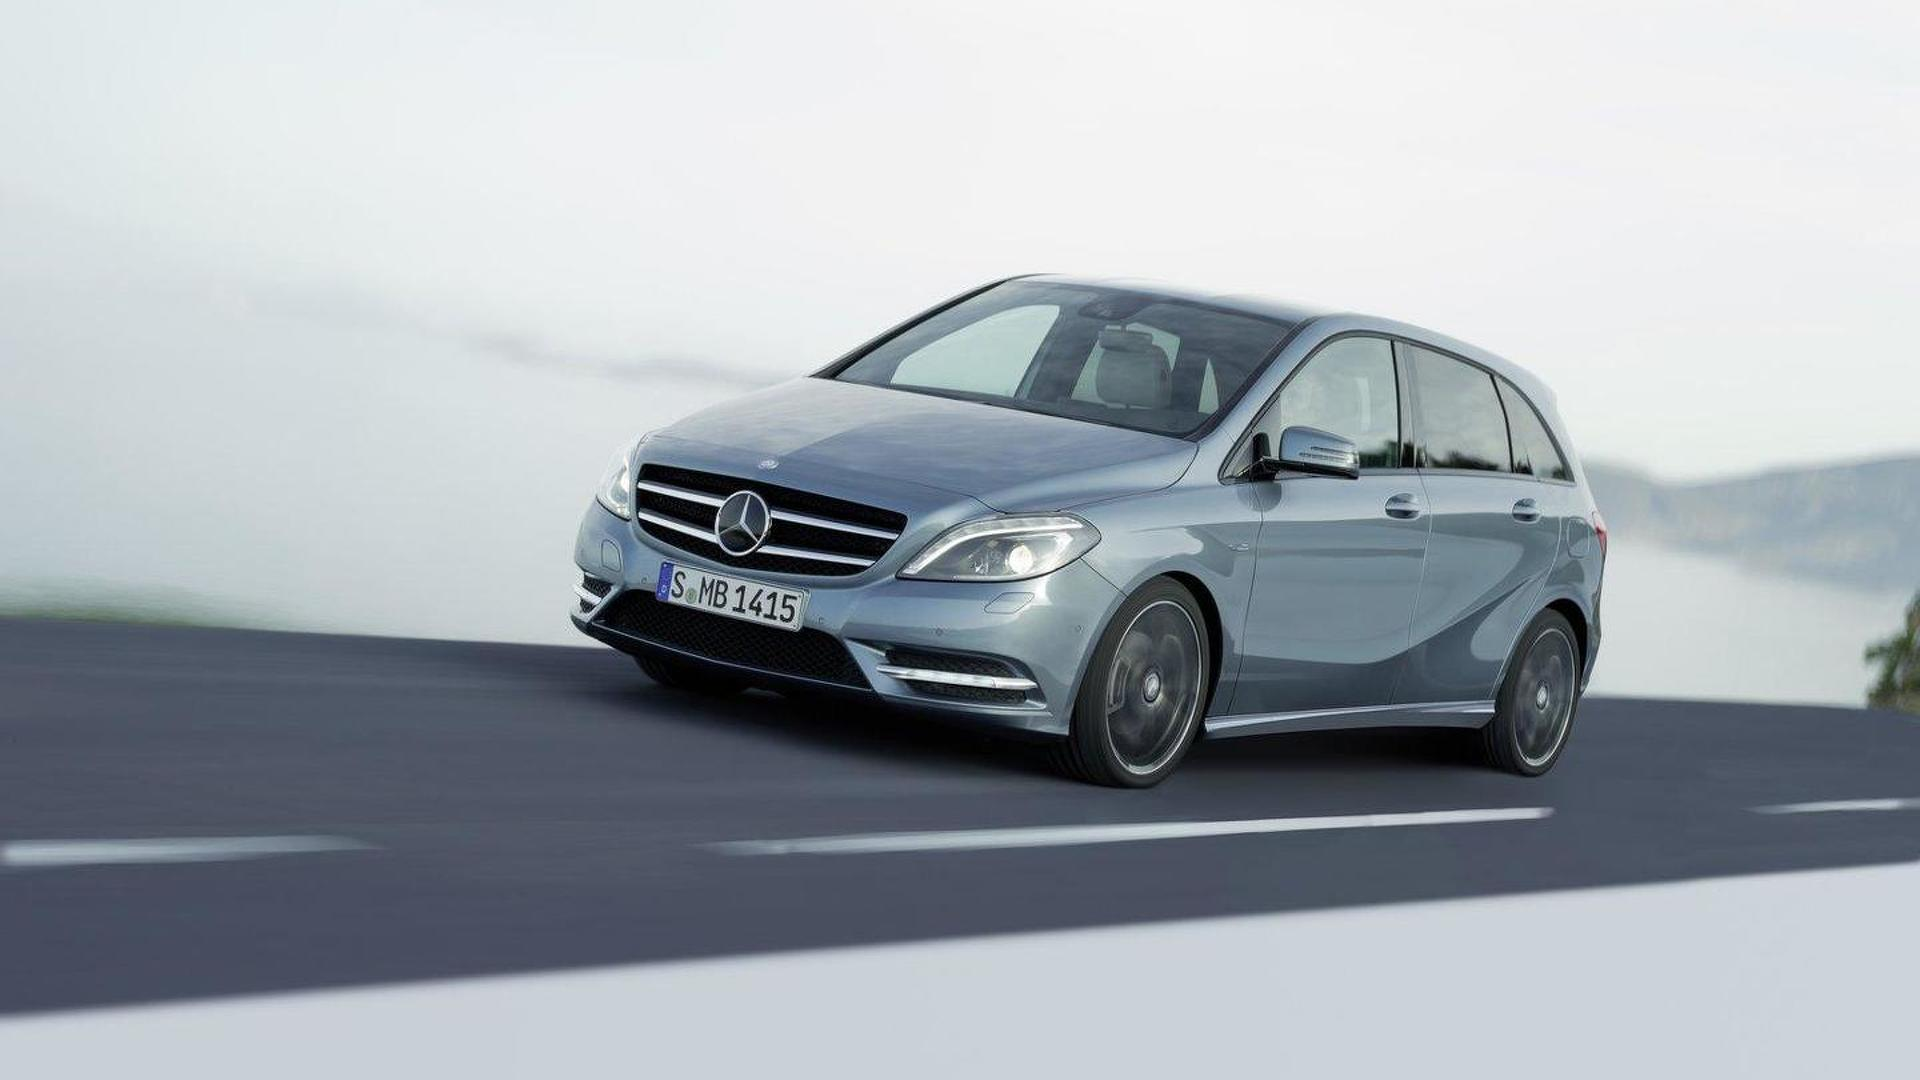 Daimler joining forces with Renault-Nissan for compact Mercedes-Benz models - report